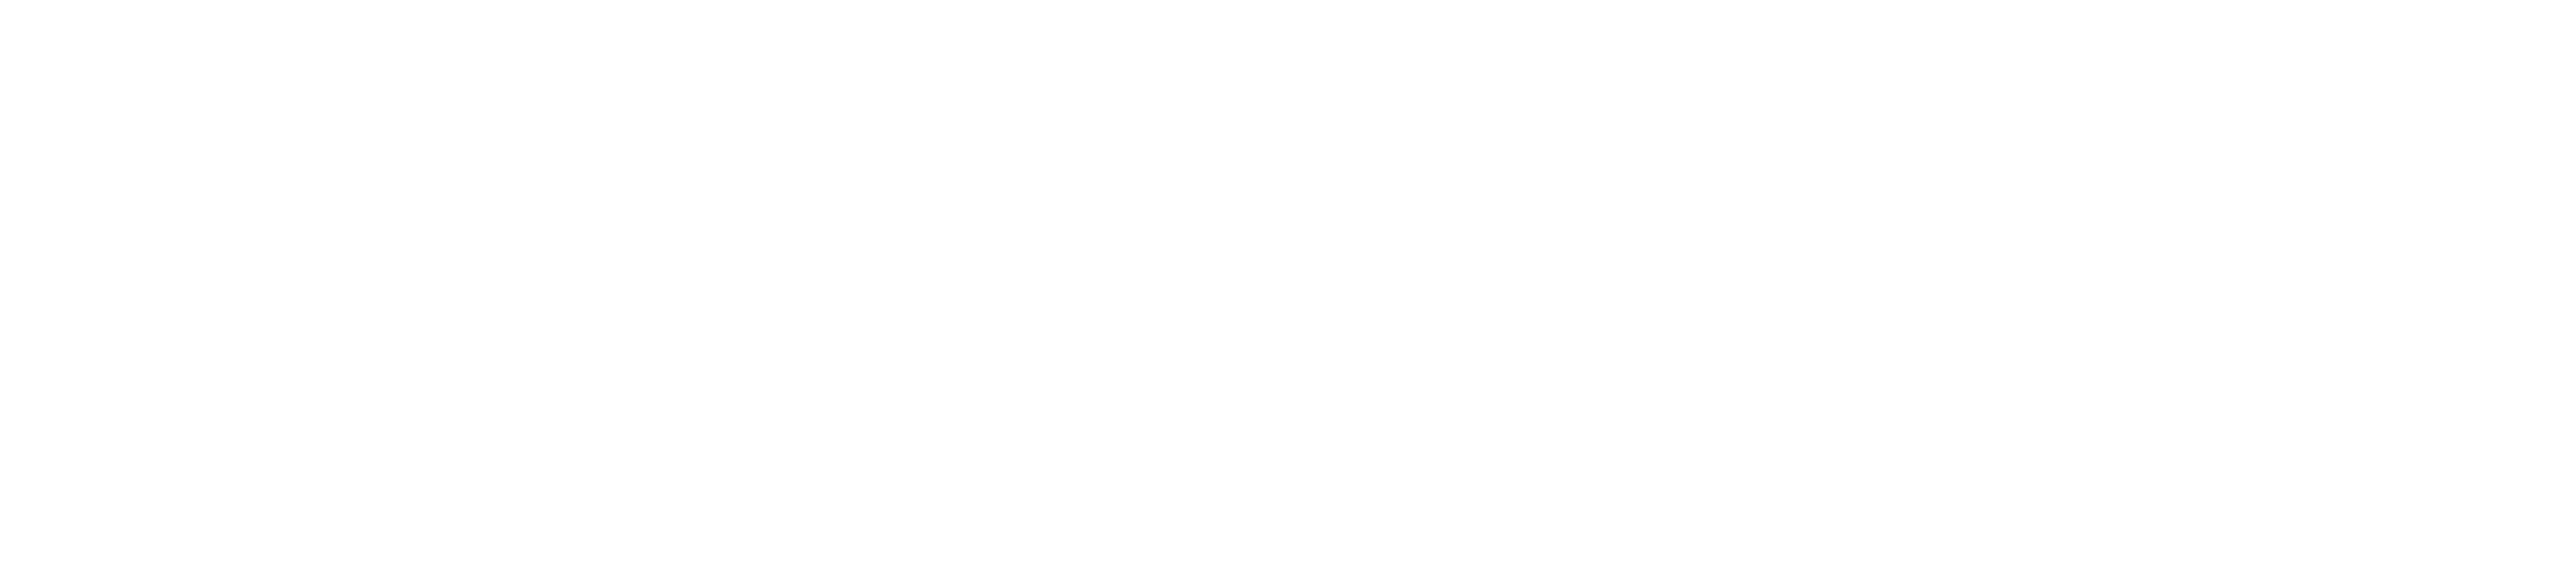 Feast at Crown this Melbourne Food and Wine Festival 2018-logo